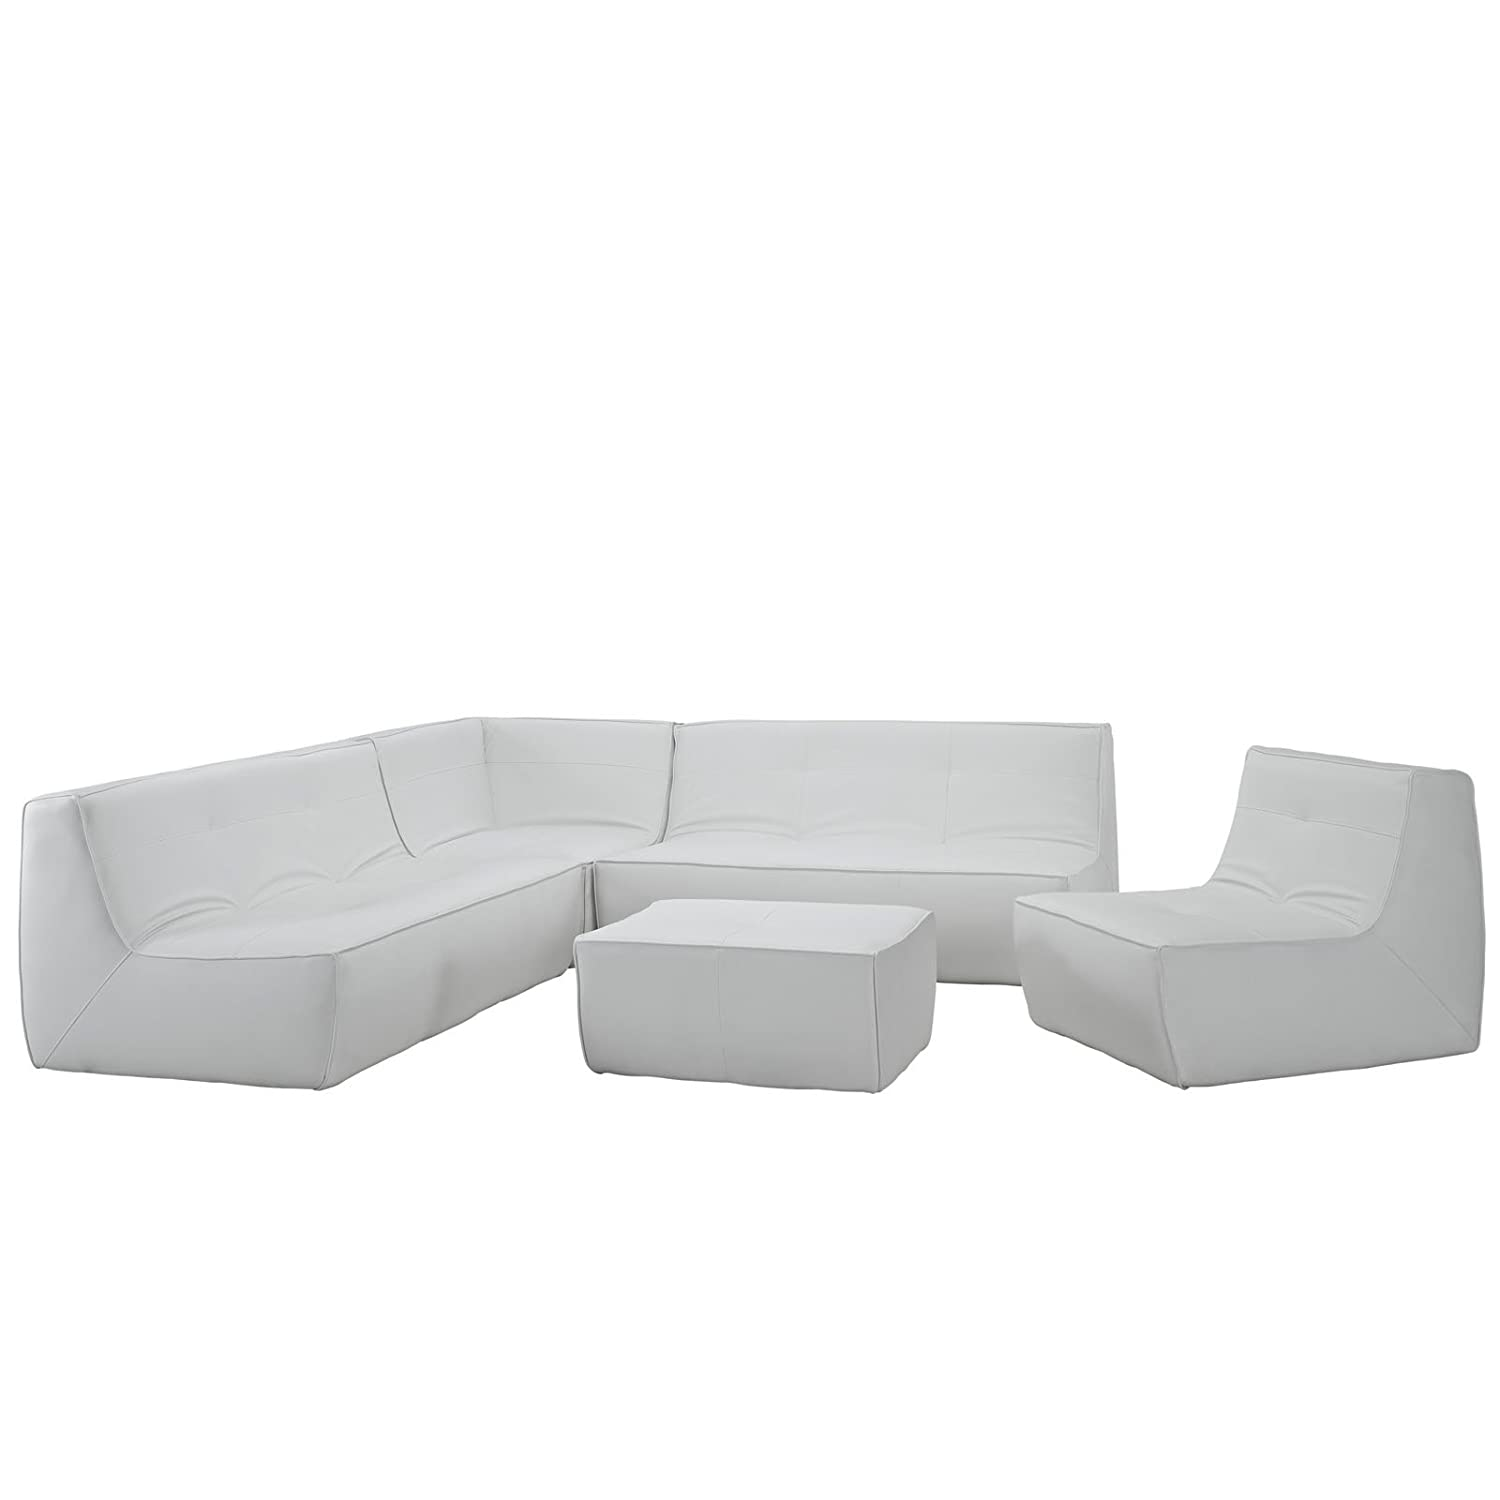 Align 5 Piece Bonded Leather Sectional Sofa + FREE Ebook for Modern Home Design Inspirations